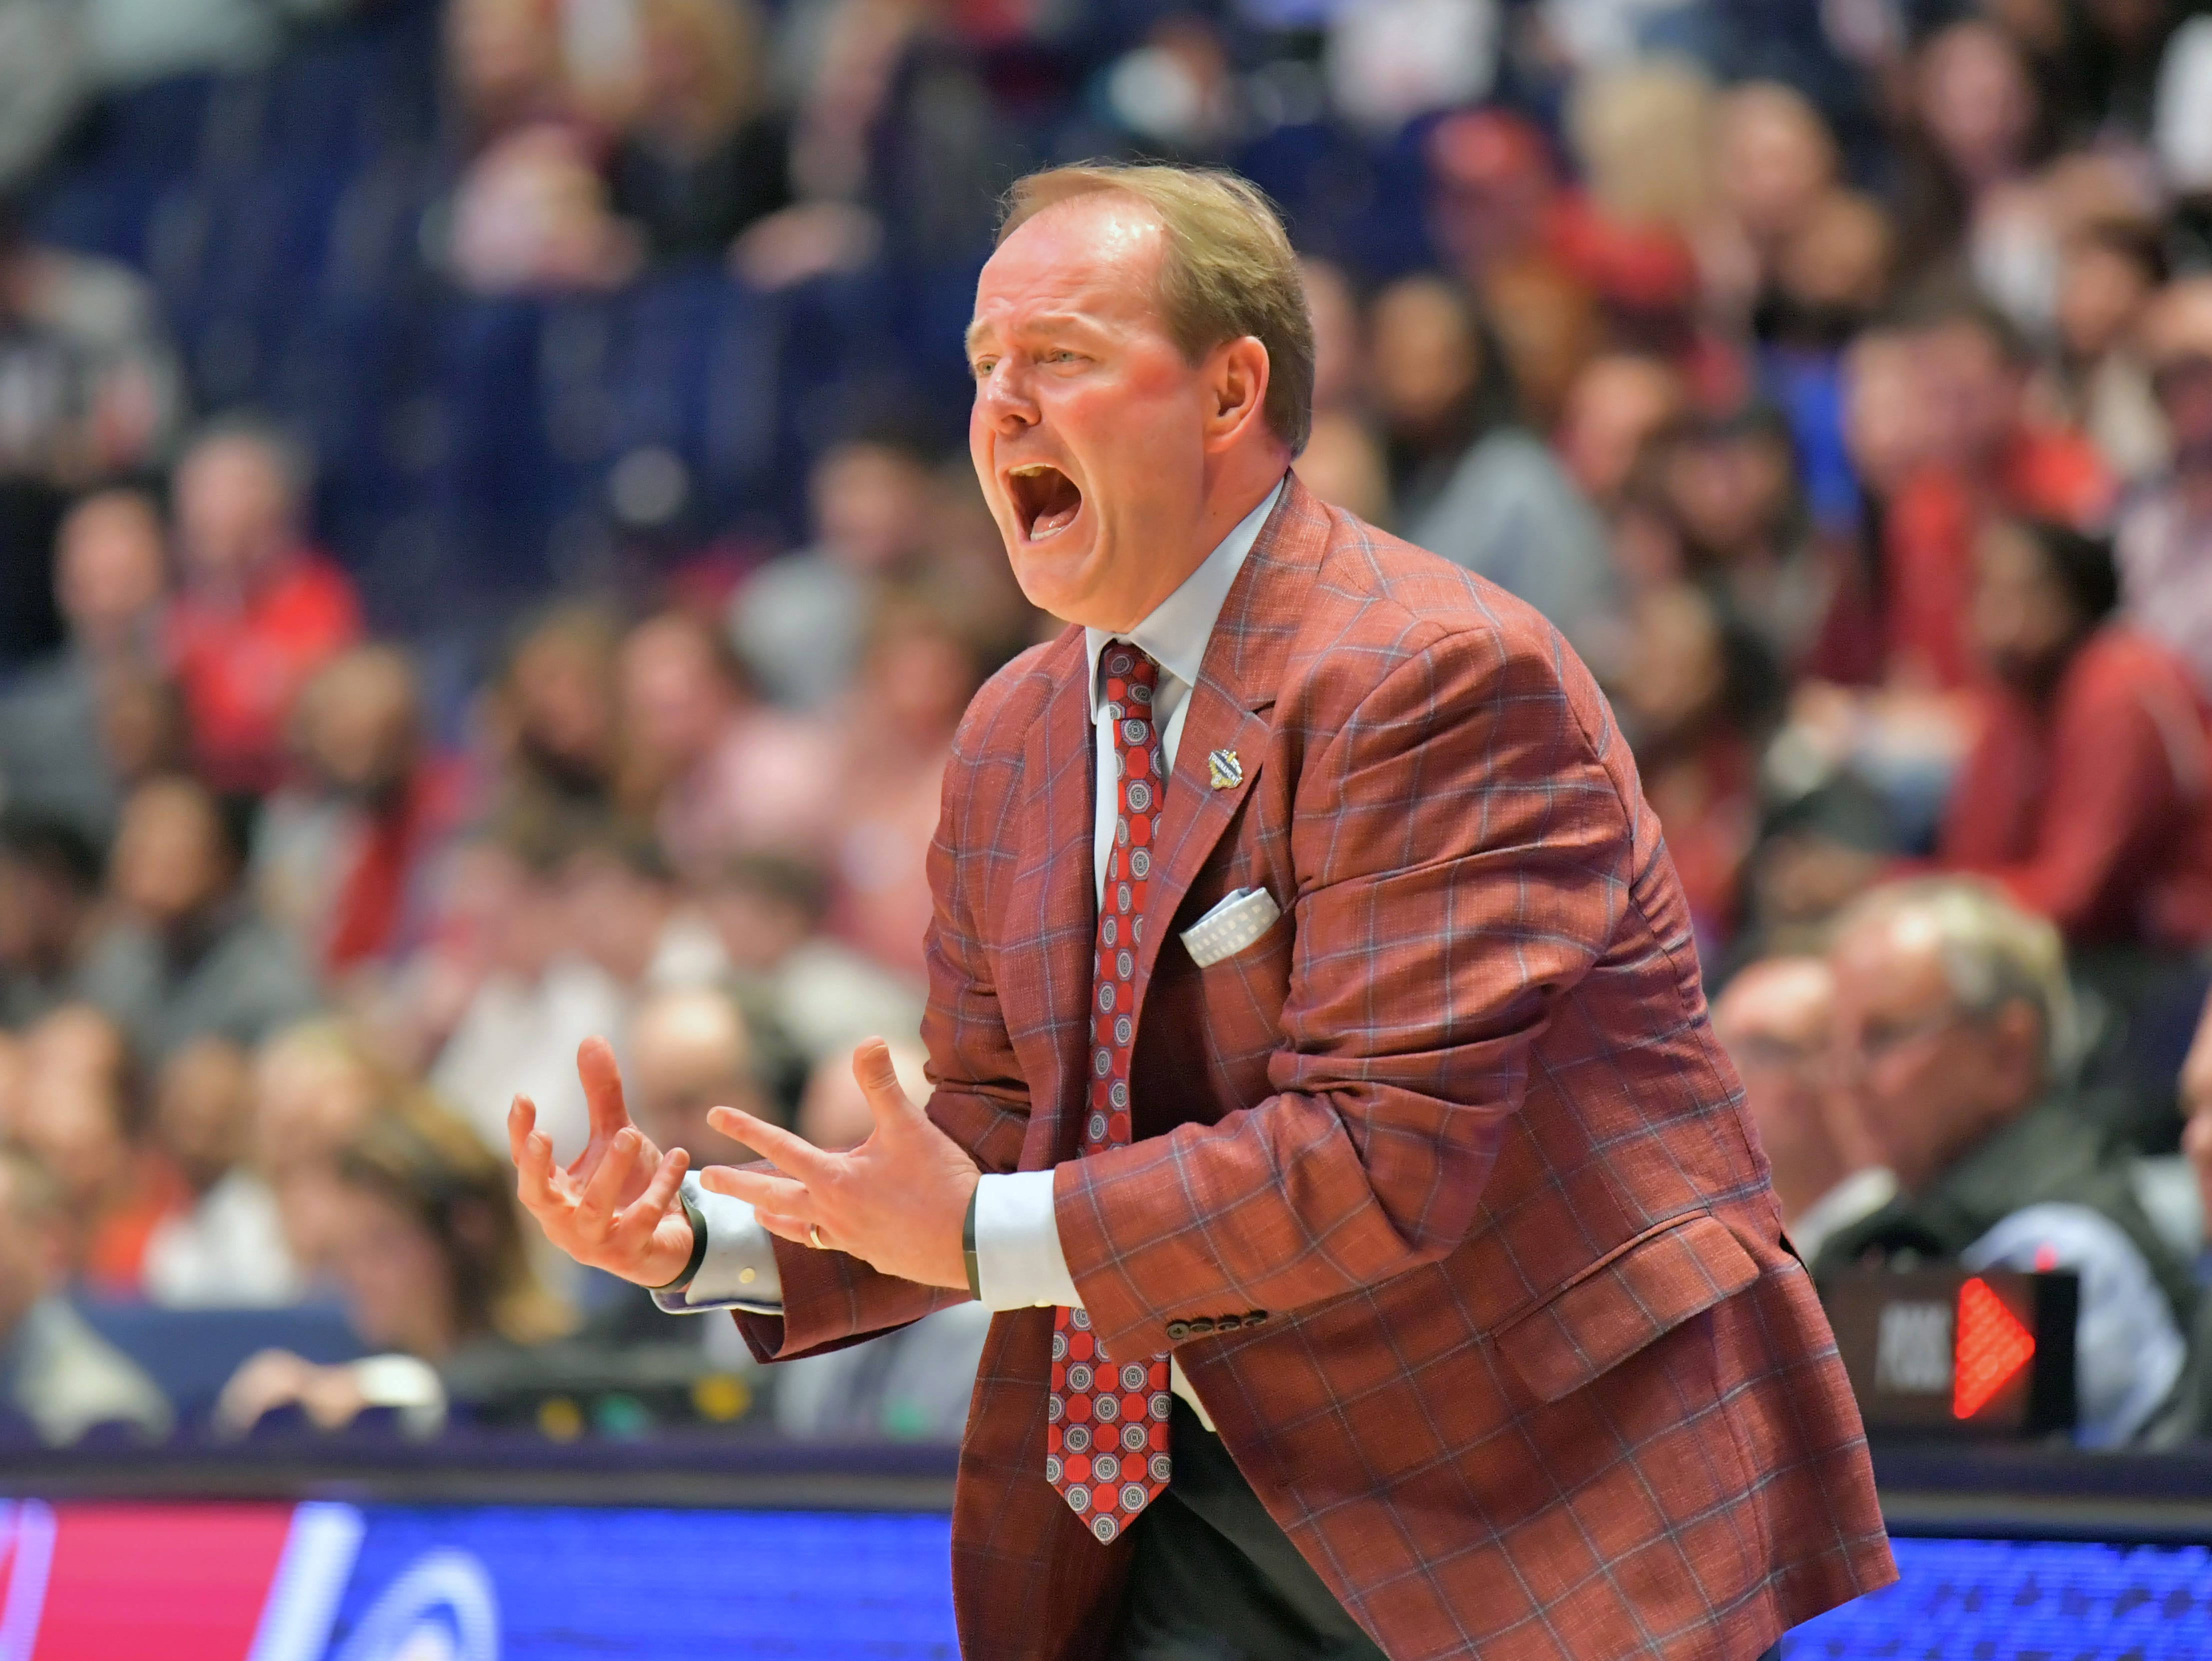 Mar 14, 2019; Nashville, TN, USA; Mississippi Rebels coach reacts in the first half against the Alabama Crimson Tide  in the SEC conference tournament at Bridgestone Arena. Mandatory Credit: Jim Brown-USA TODAY Sports